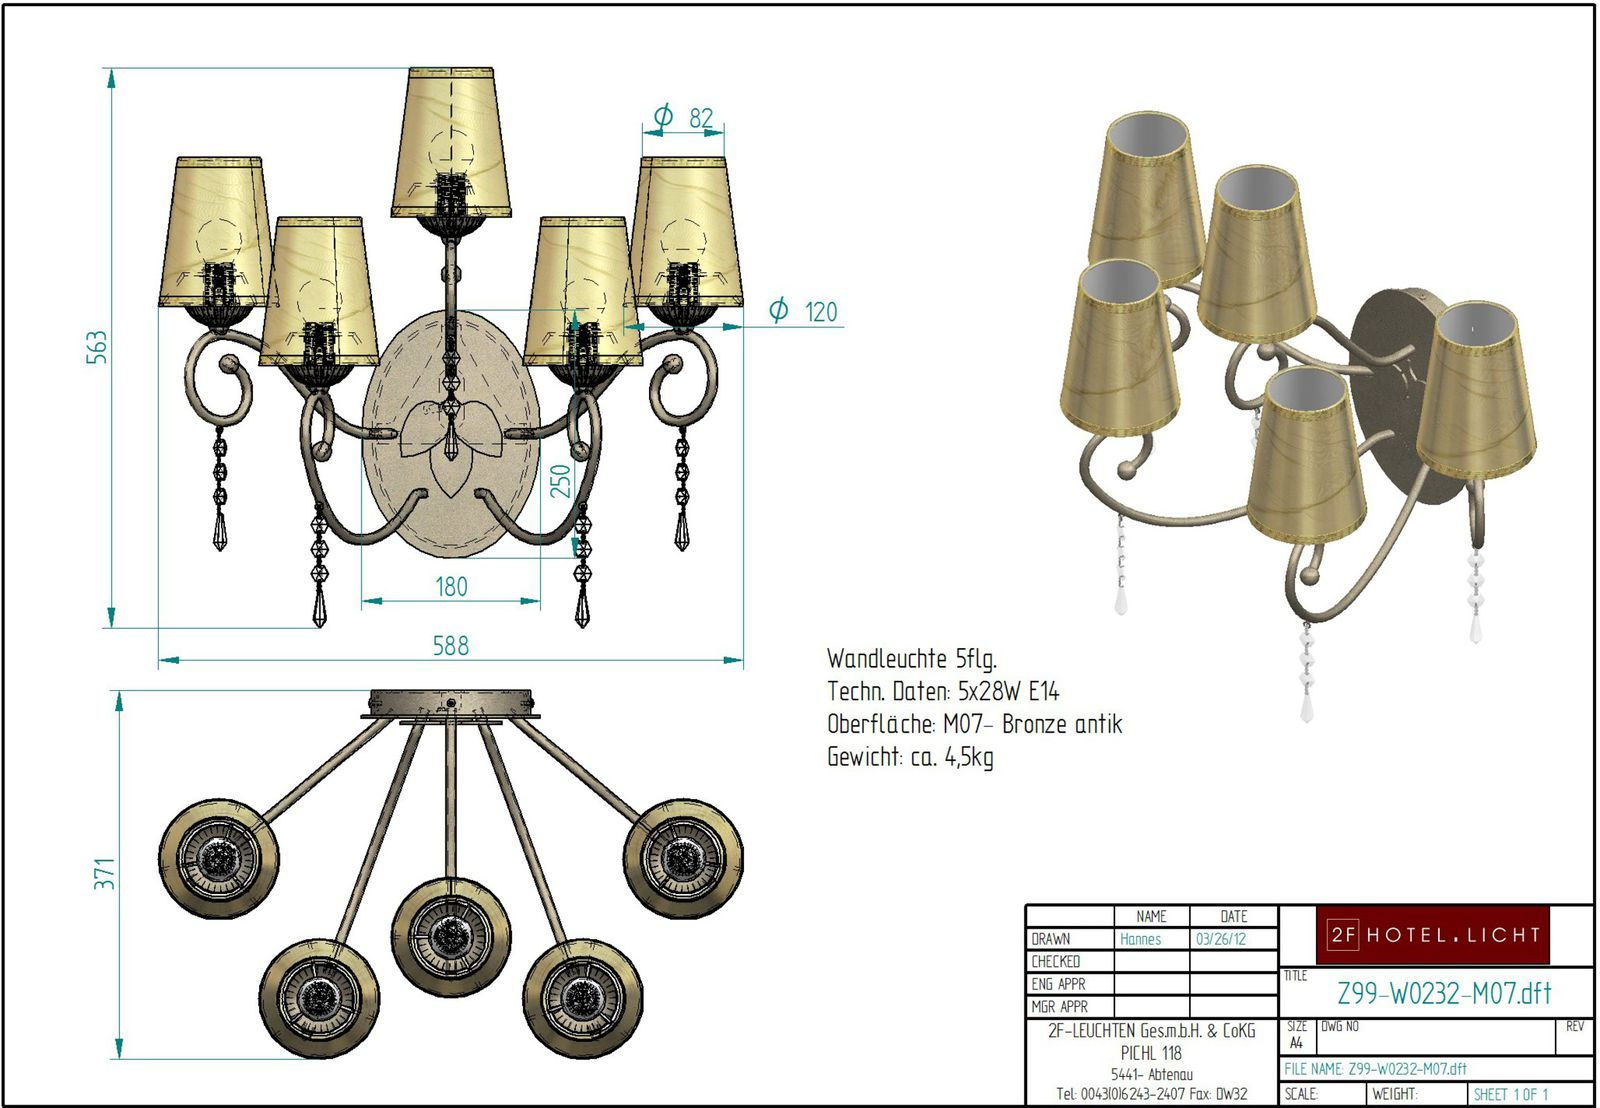 wall lamp, lenght=371mm, wide=588mm, height=563mm, surface: bronce antique (steel), techn. details: 5xE14, 5x28W